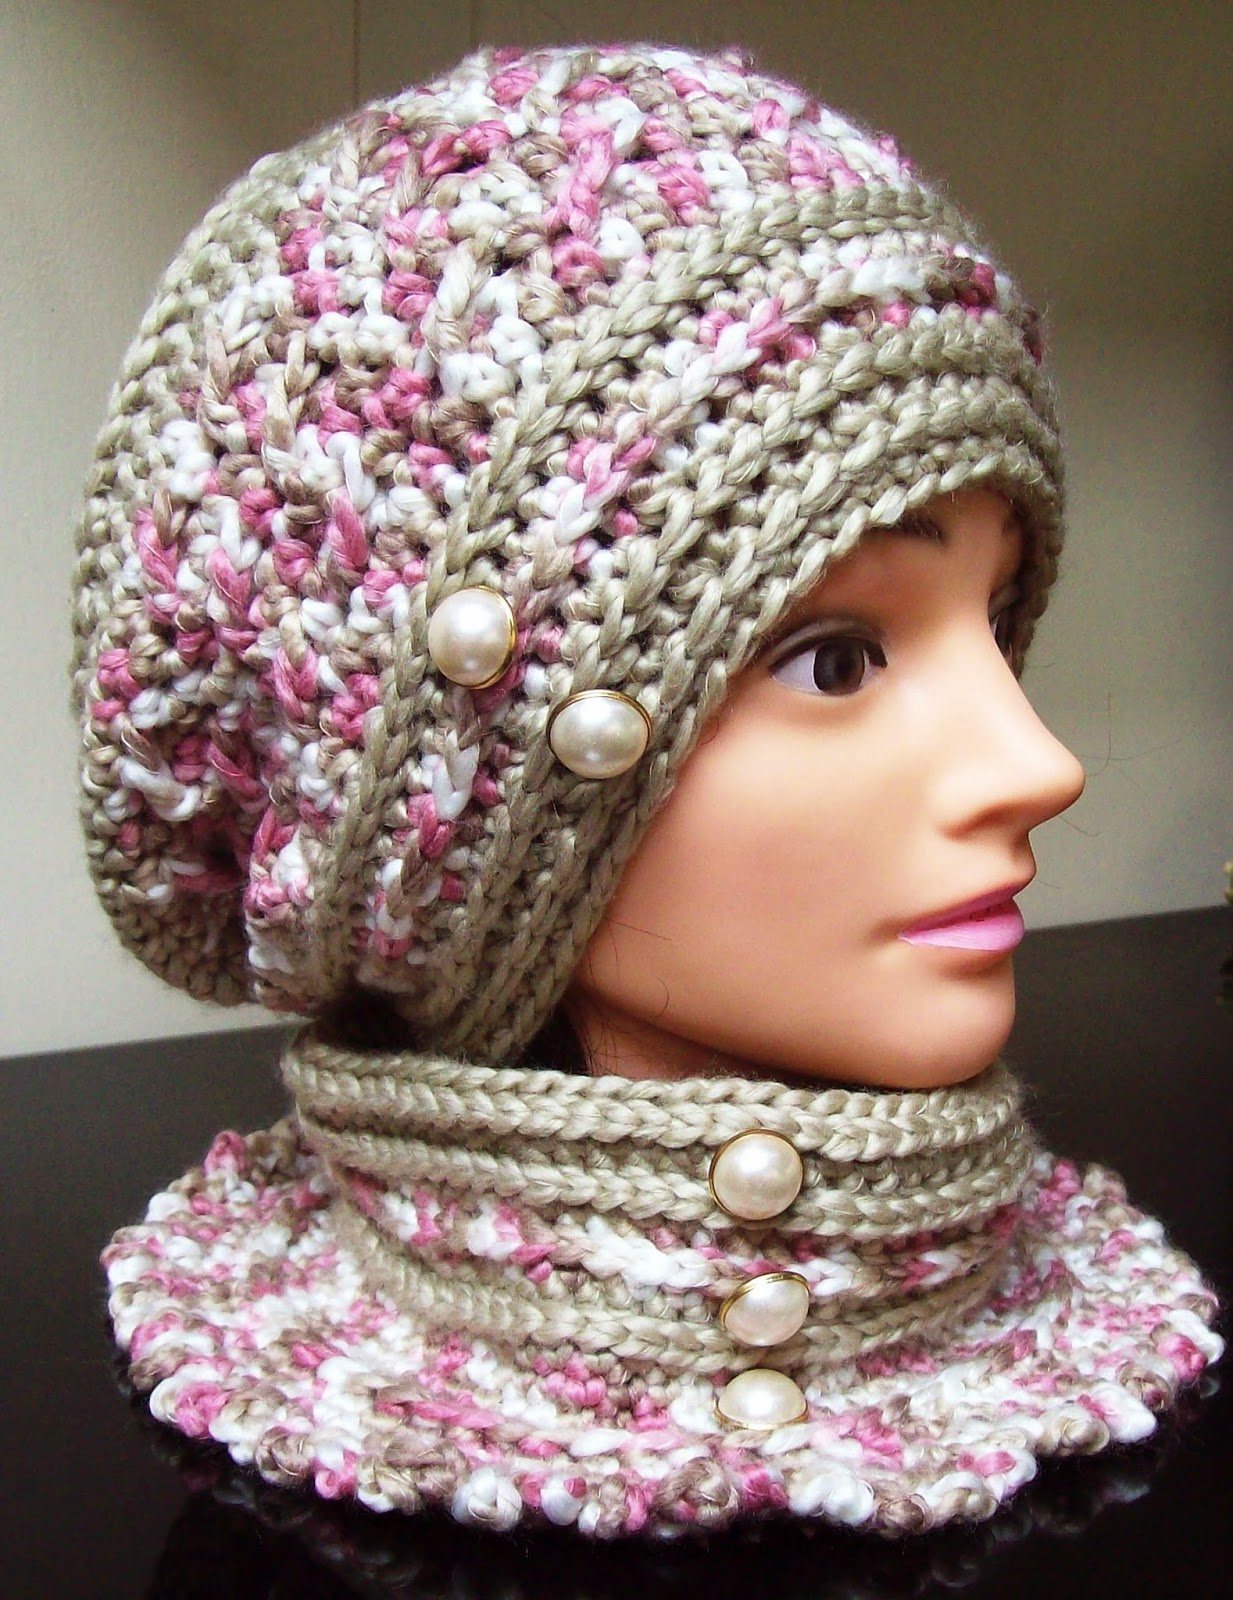 Missed were Free crochet hat patterns for adults